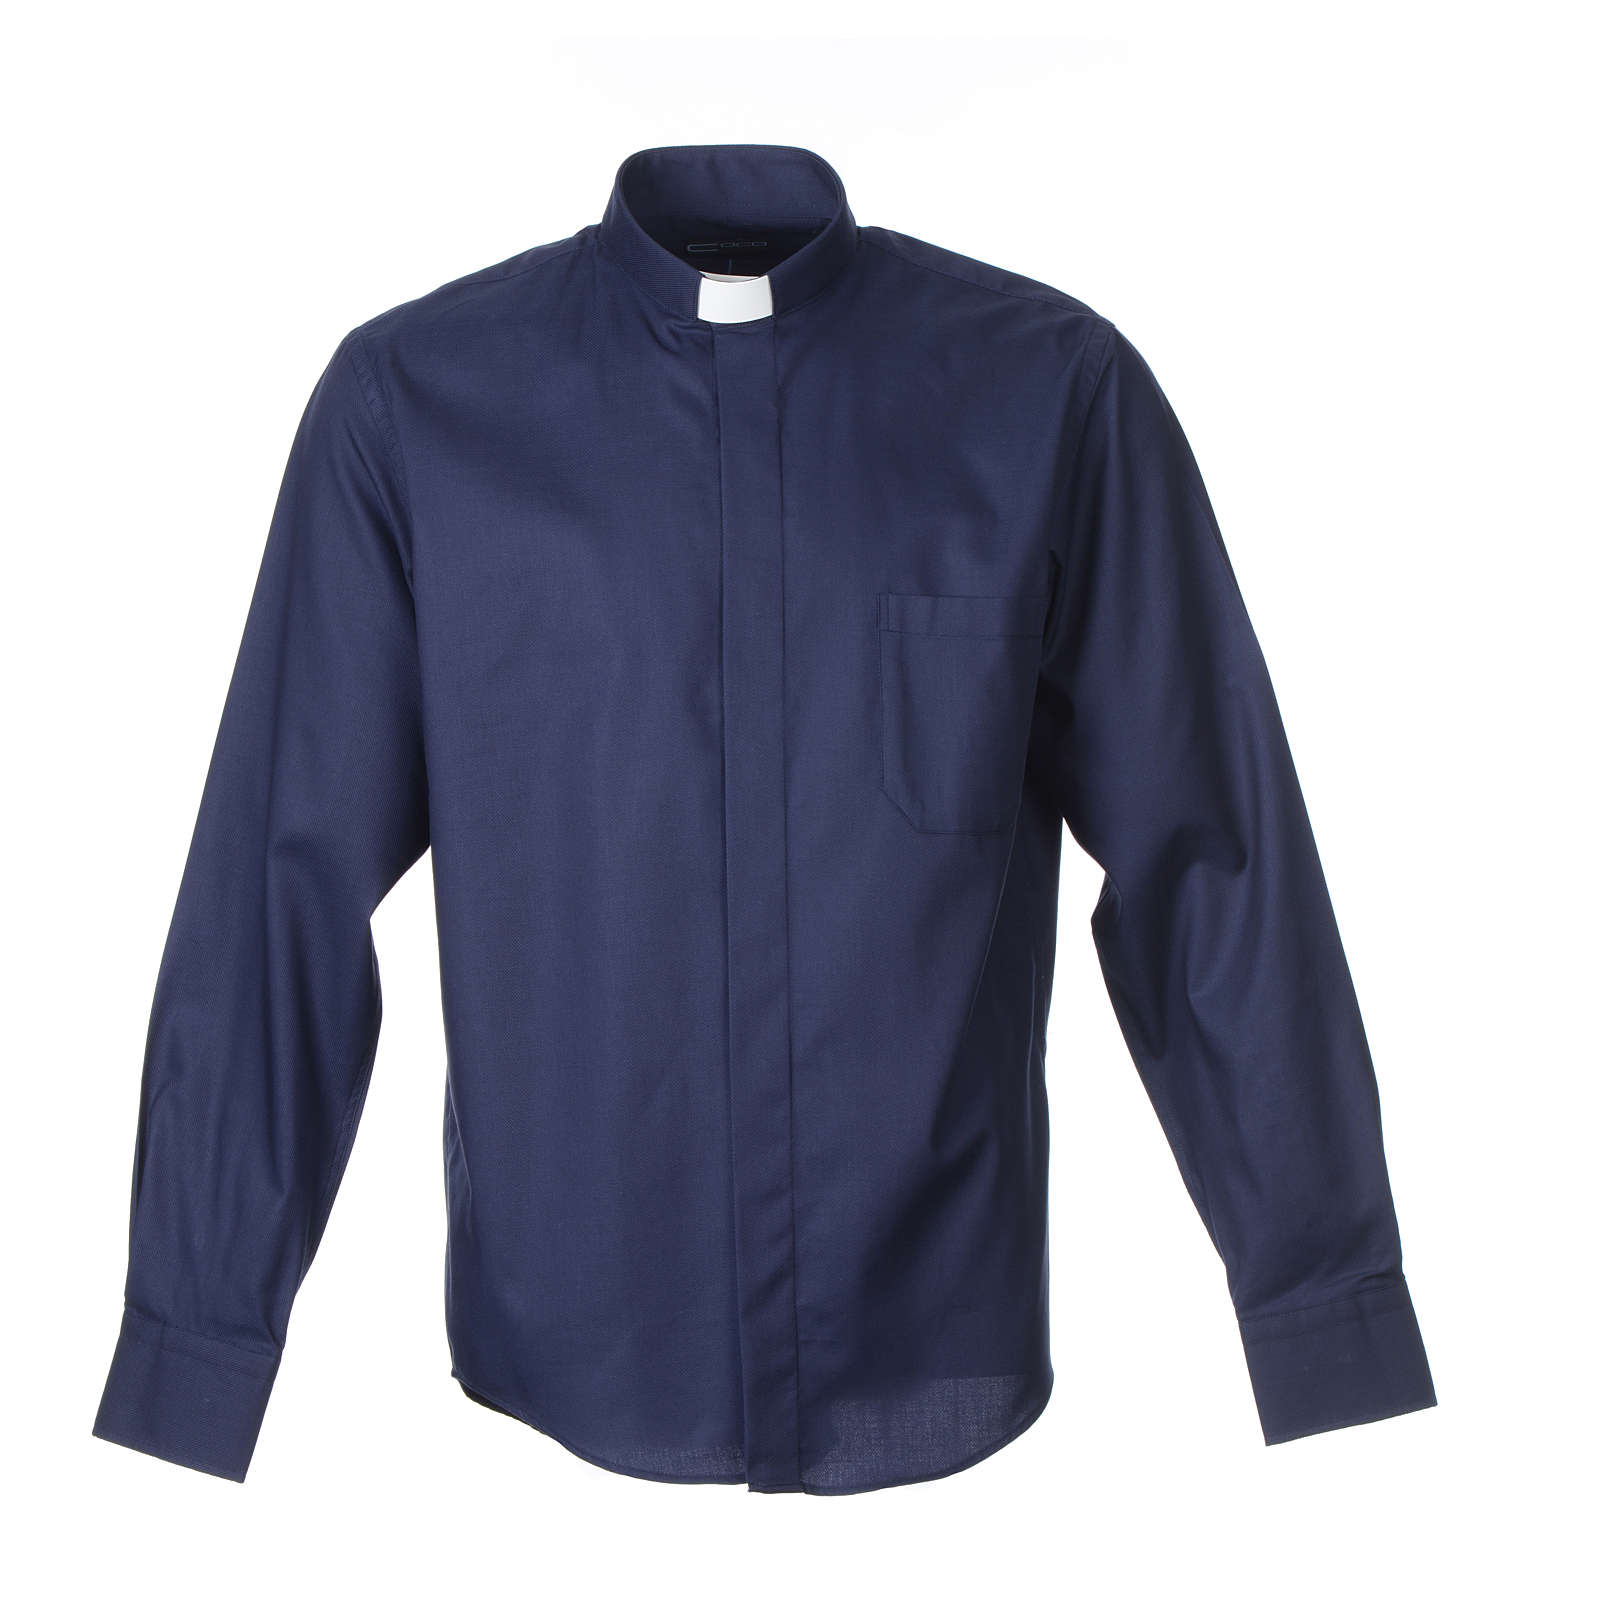 Long sleeve blue mix cotton clergy shirt easy to iron 4